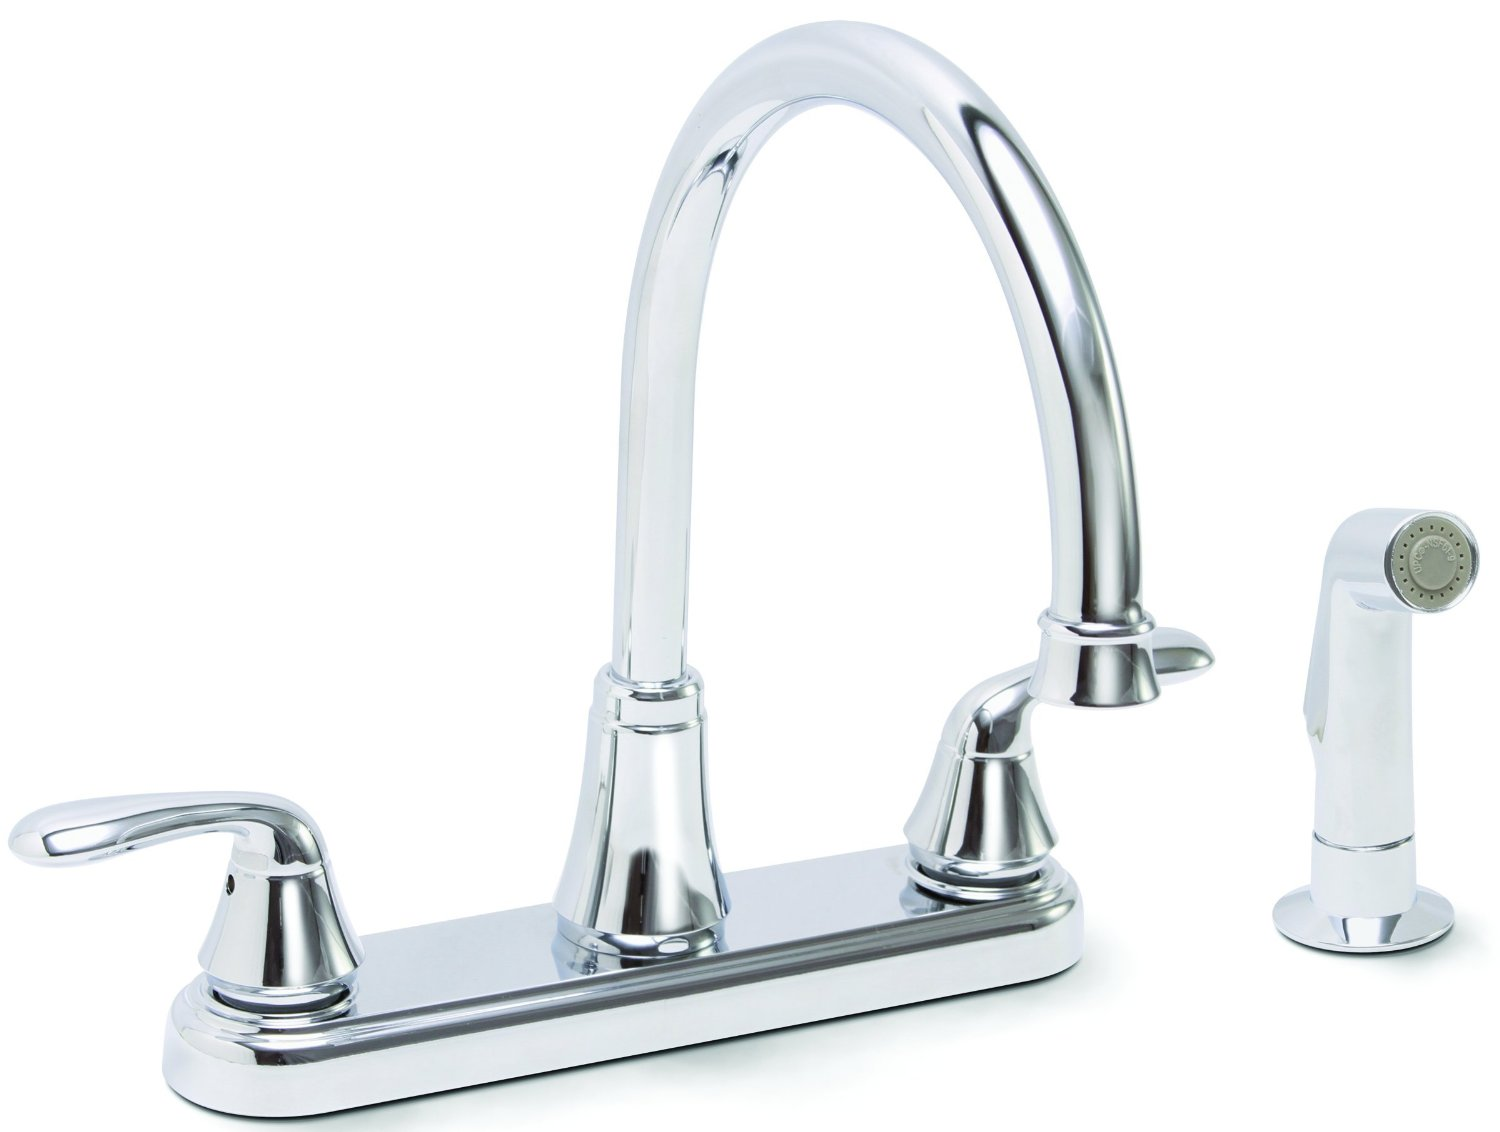 Best Kitchen Sink Faucets: Single & Two Handle, White ...